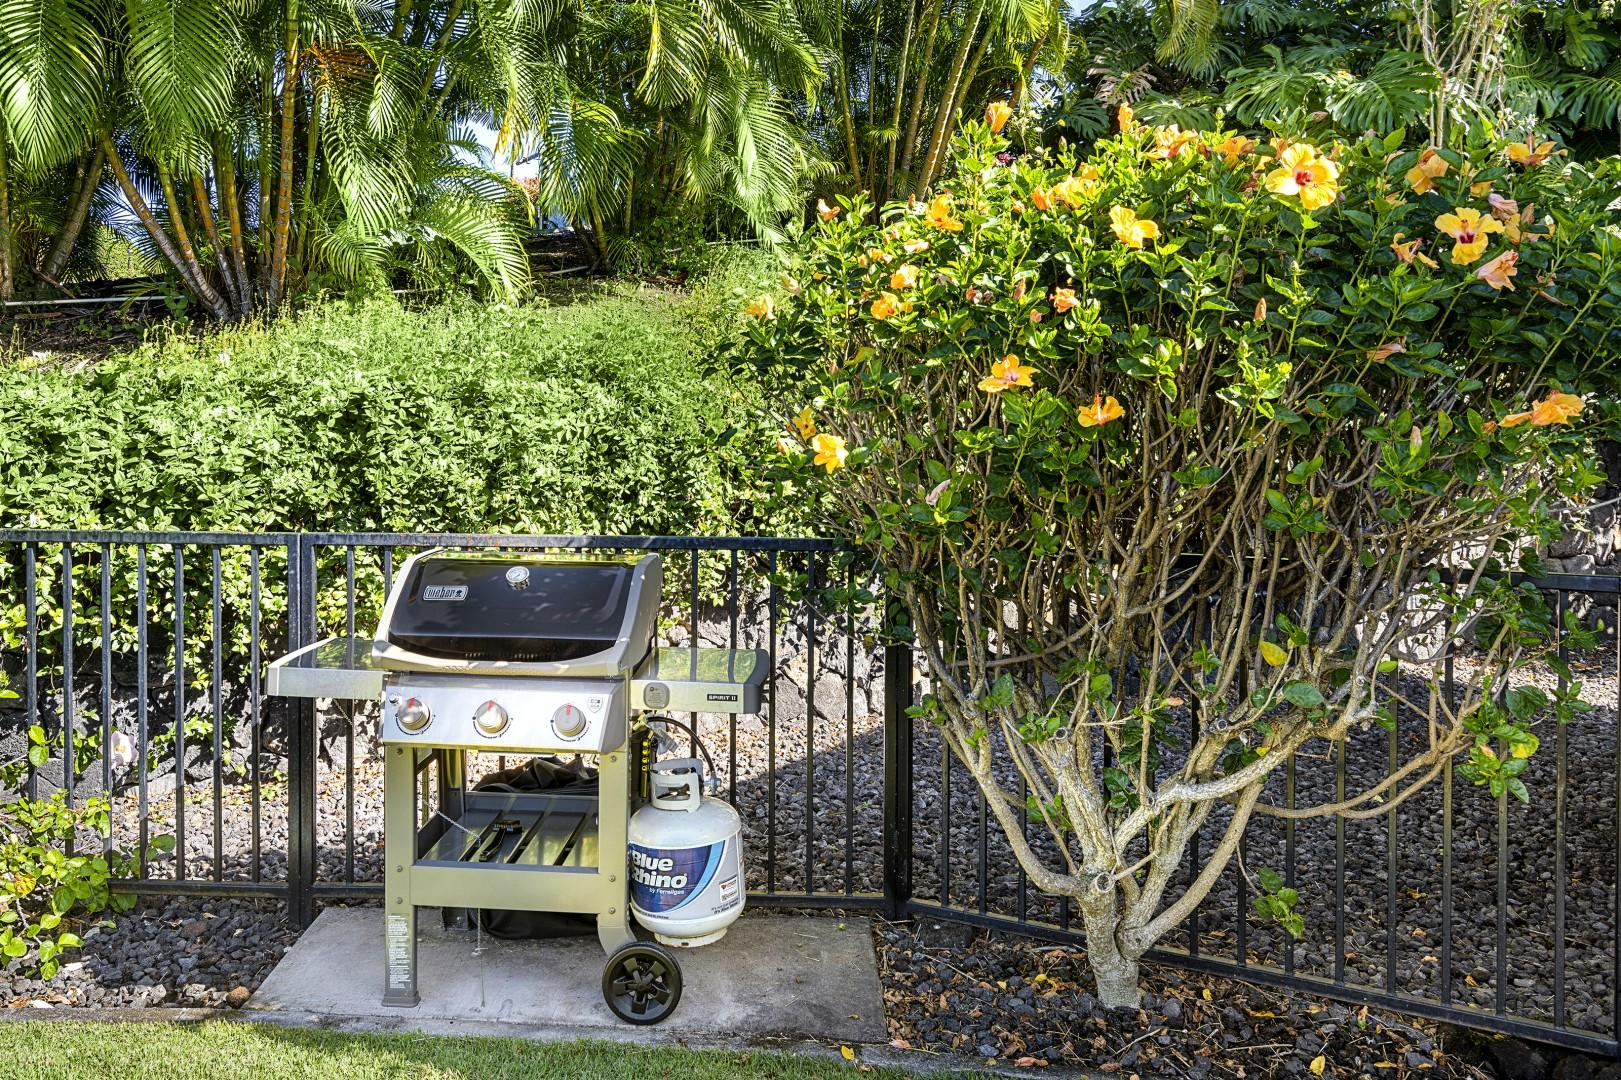 BBQ for your grilling pleasure!